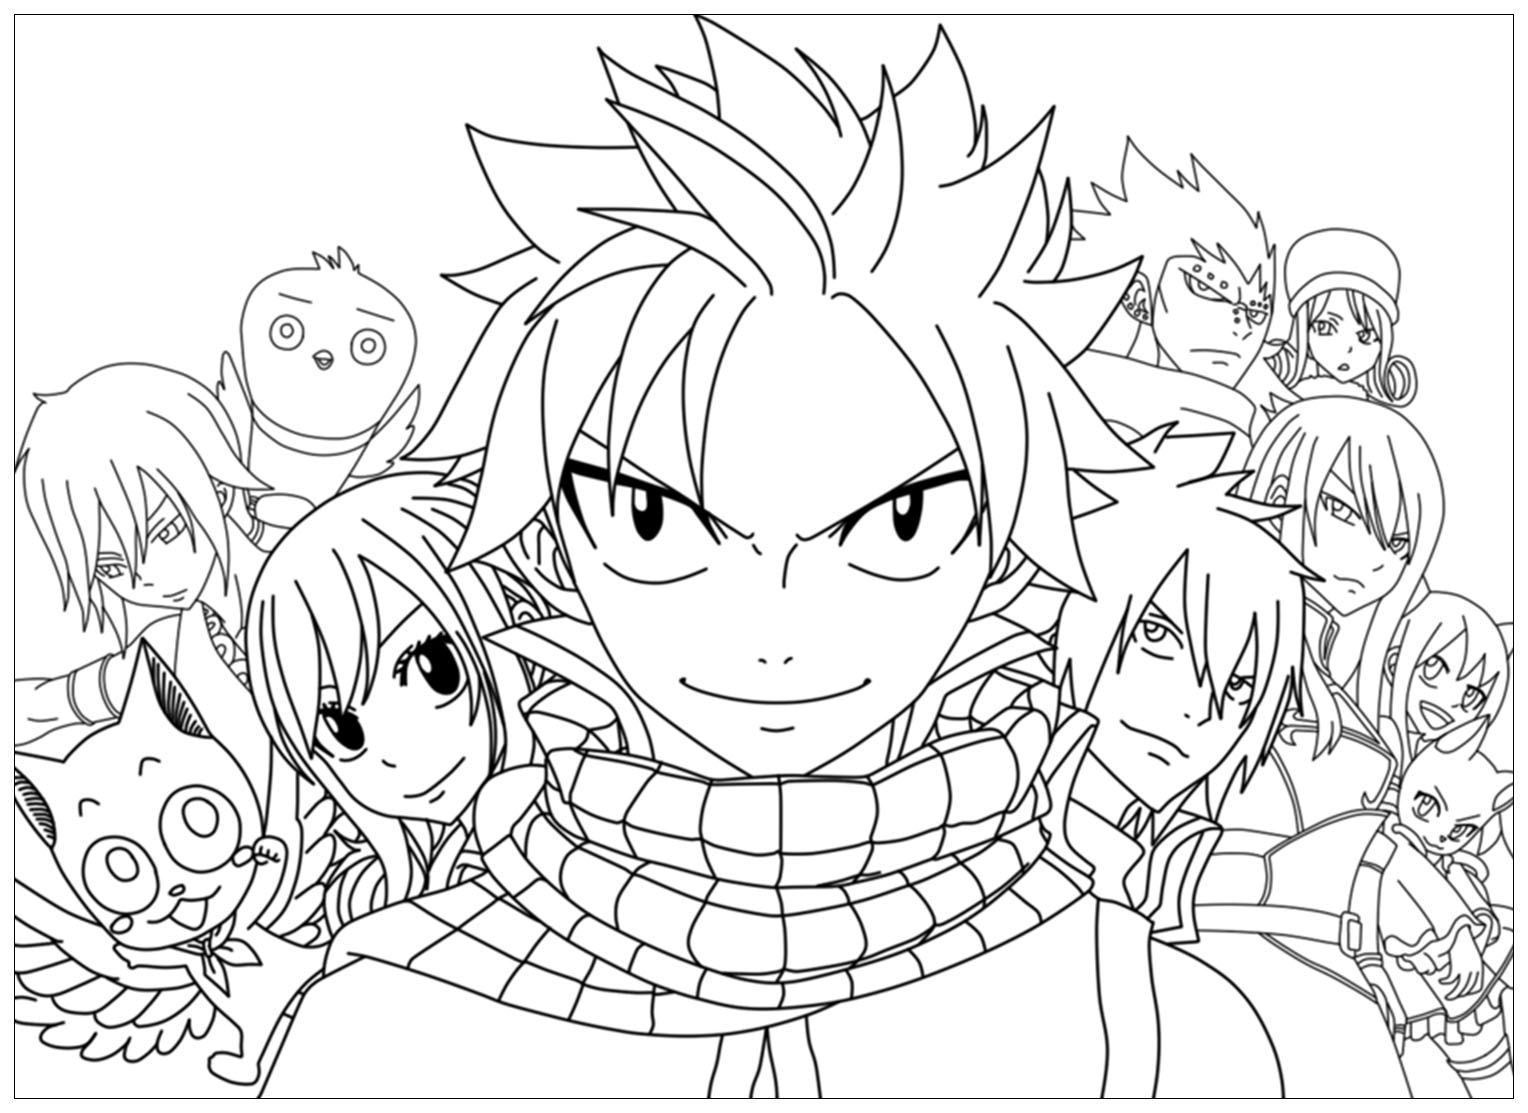 Free Fairy Tail Coloring Page To Print And Color For Kids From The Gallery Fairy Tail Coloring Pages Cartoon Coloring Pages Free Anime Characters [ 1113 x 1528 Pixel ]